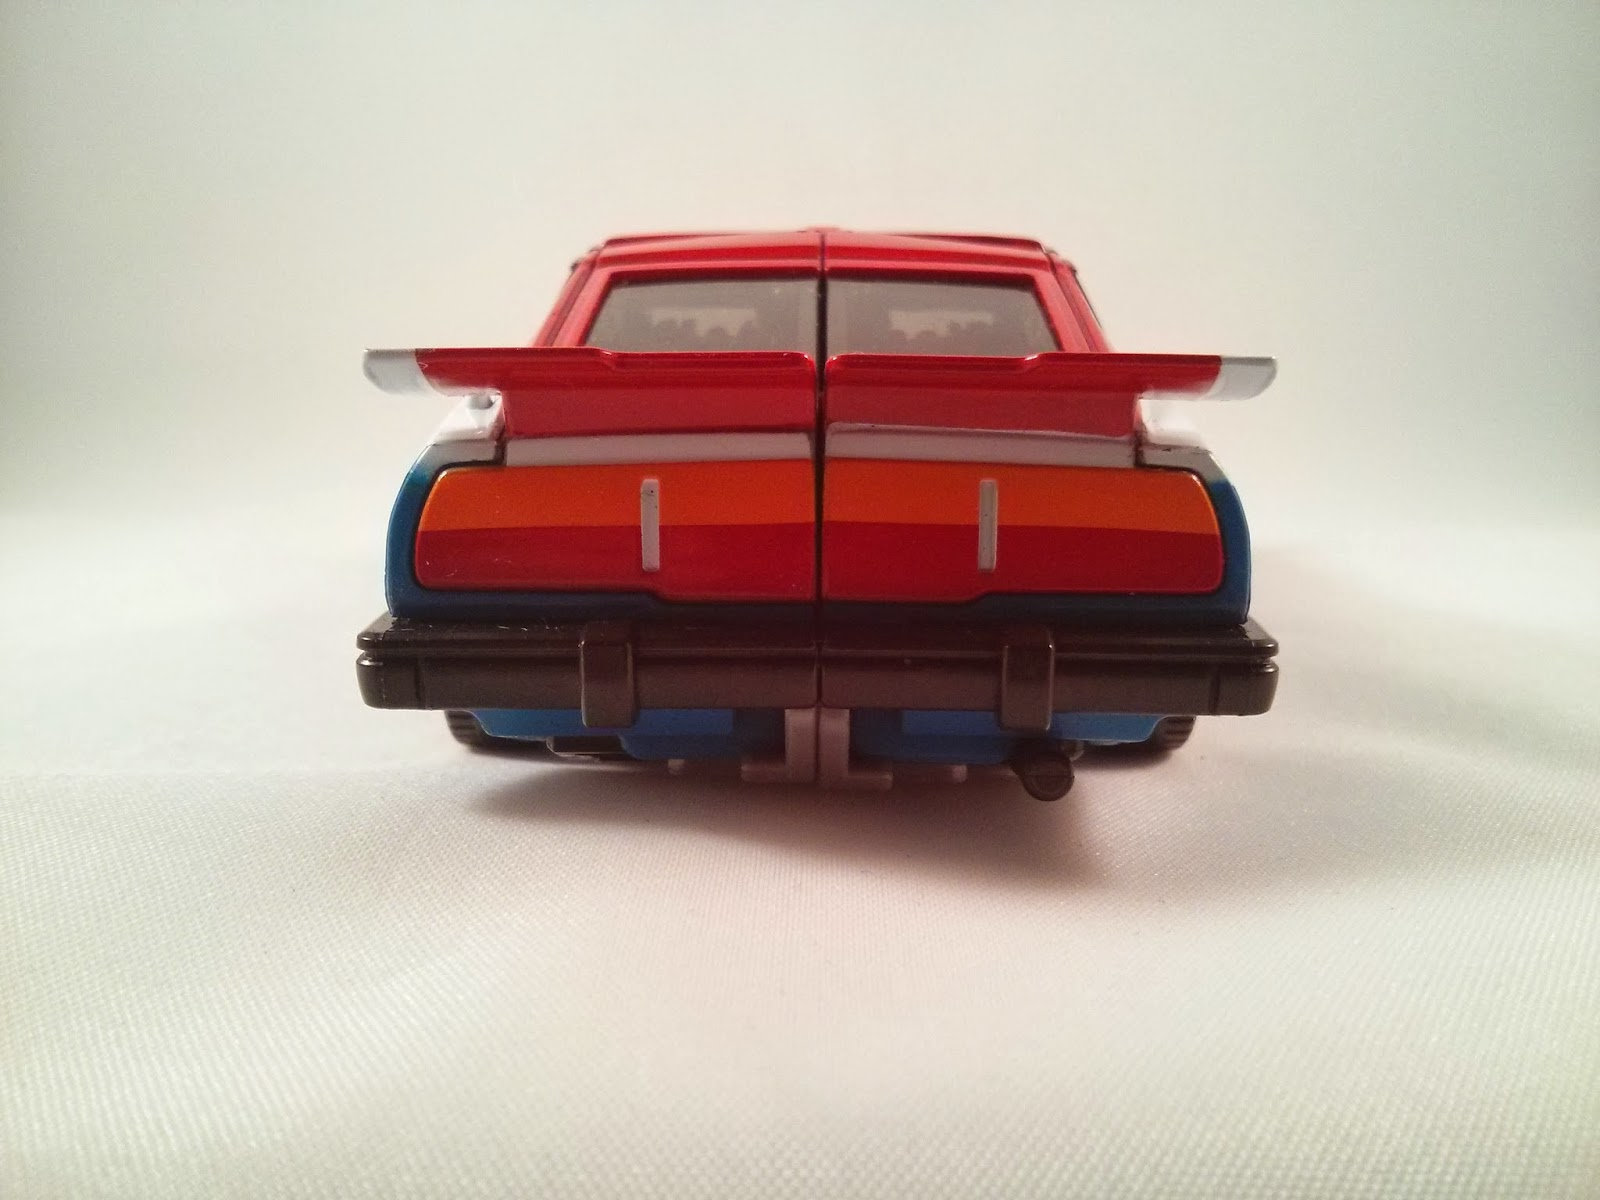 the rear end of the car mode